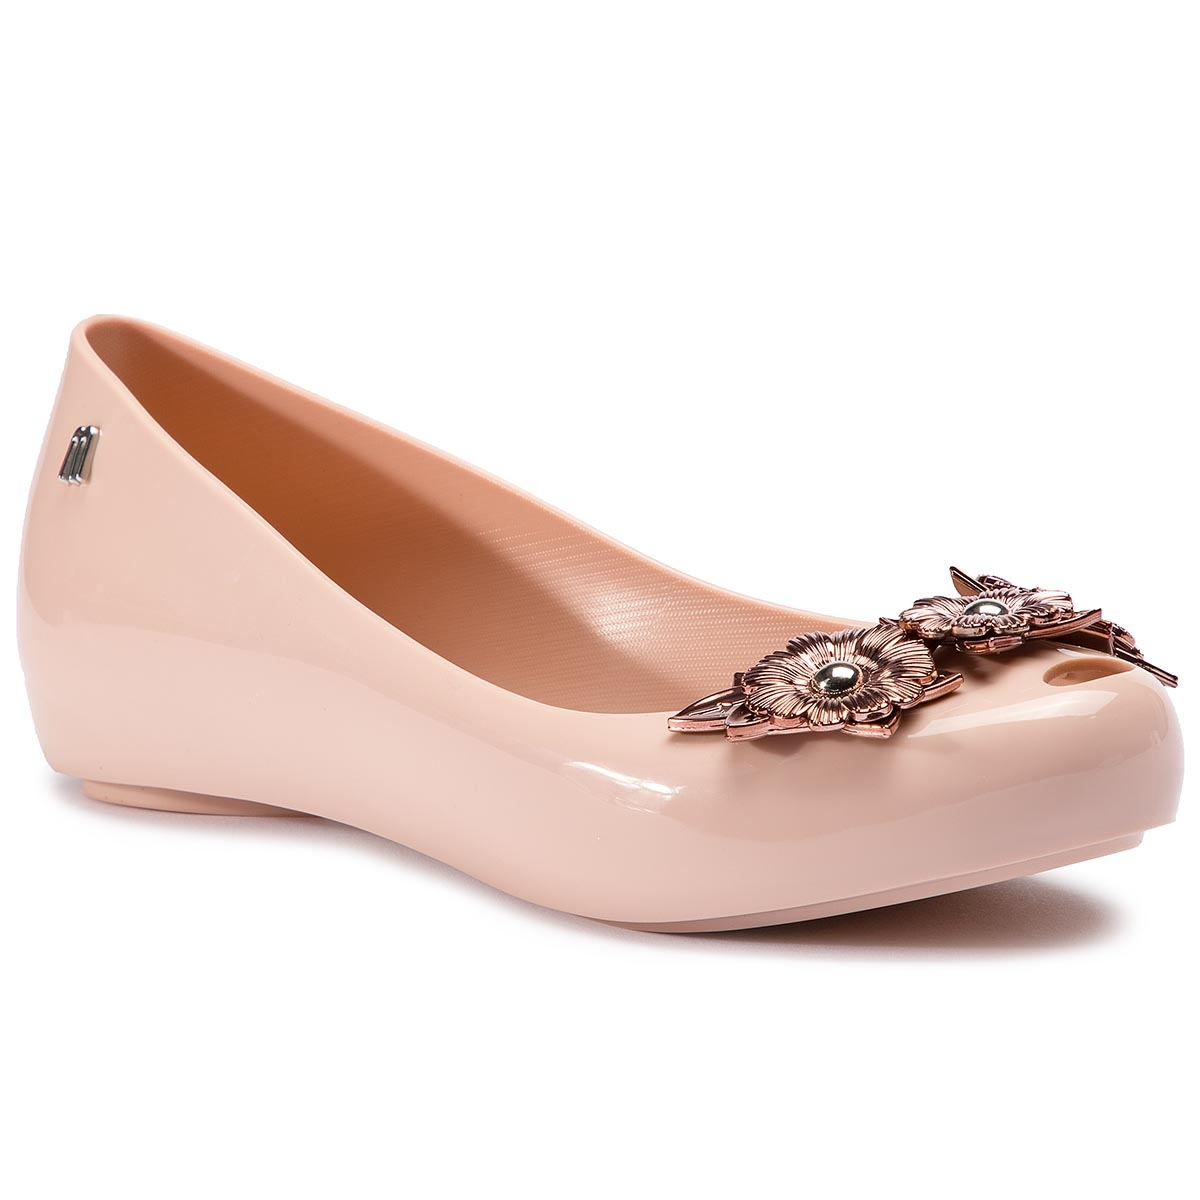 Balerini Melissa - Ultragirl Flower Chrom 32655 Pink/Pink 50910 imagine epantofi.ro